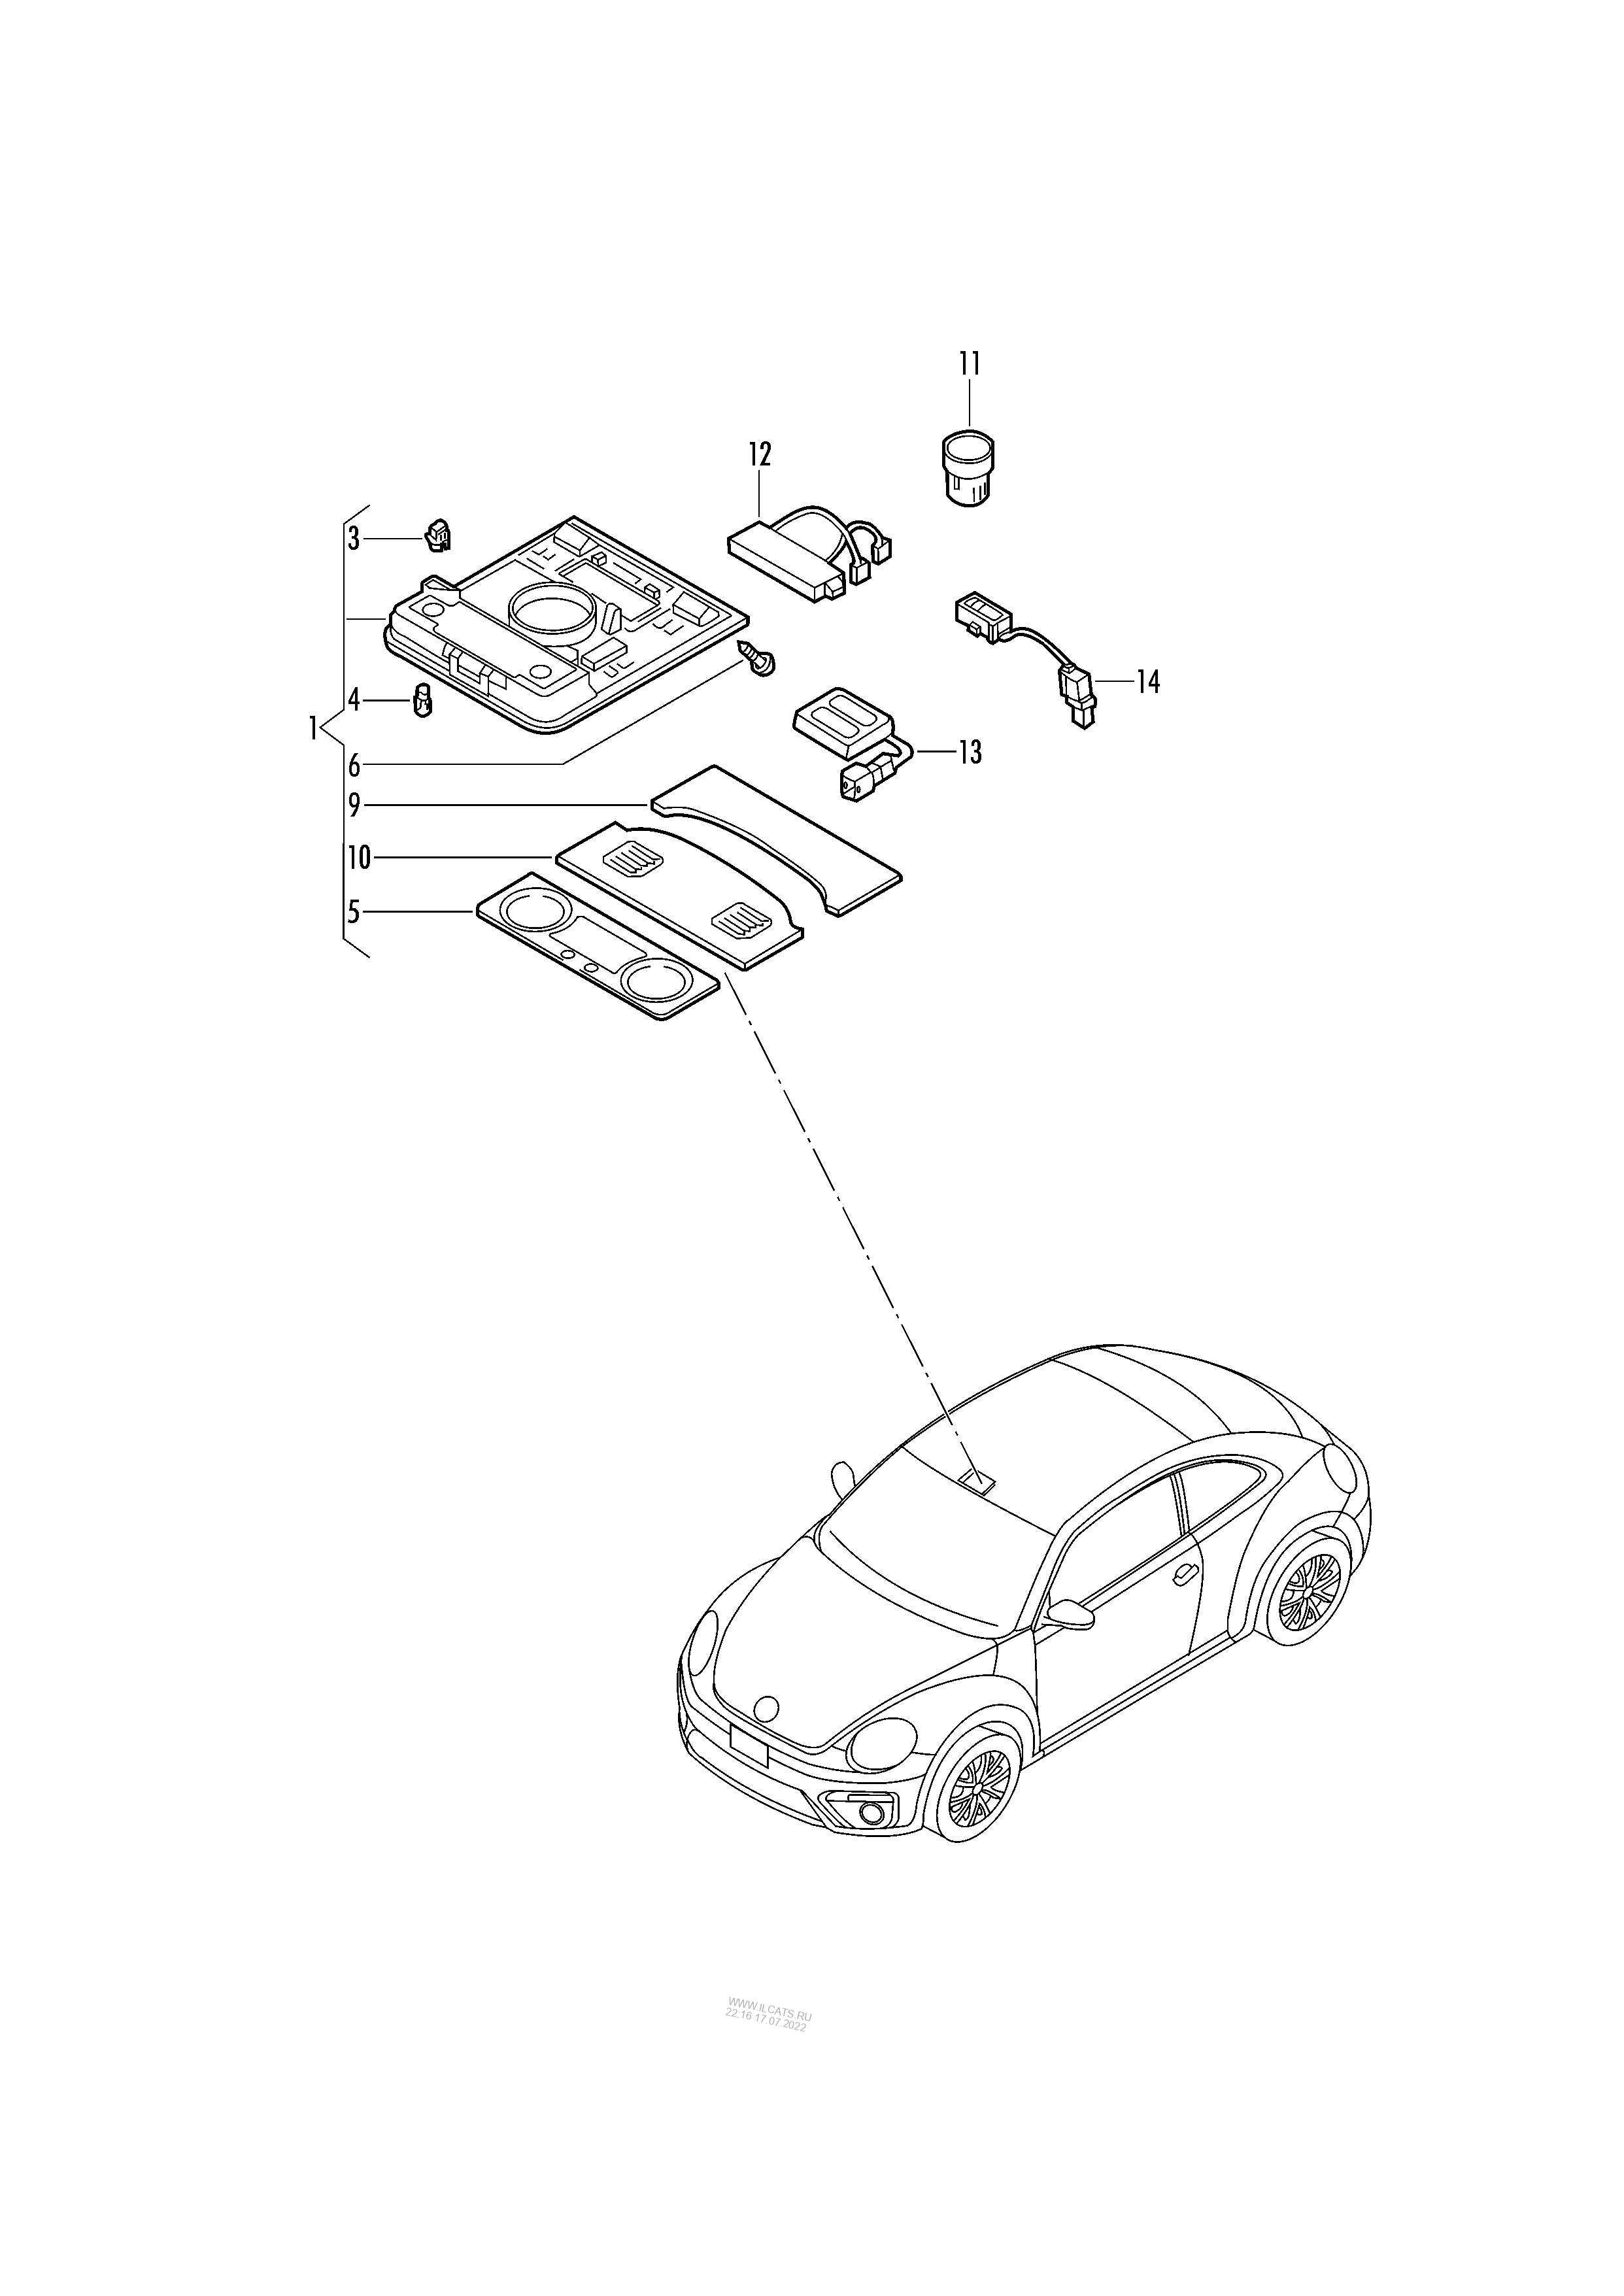 interior and reading light  for vehicles with anti-theft